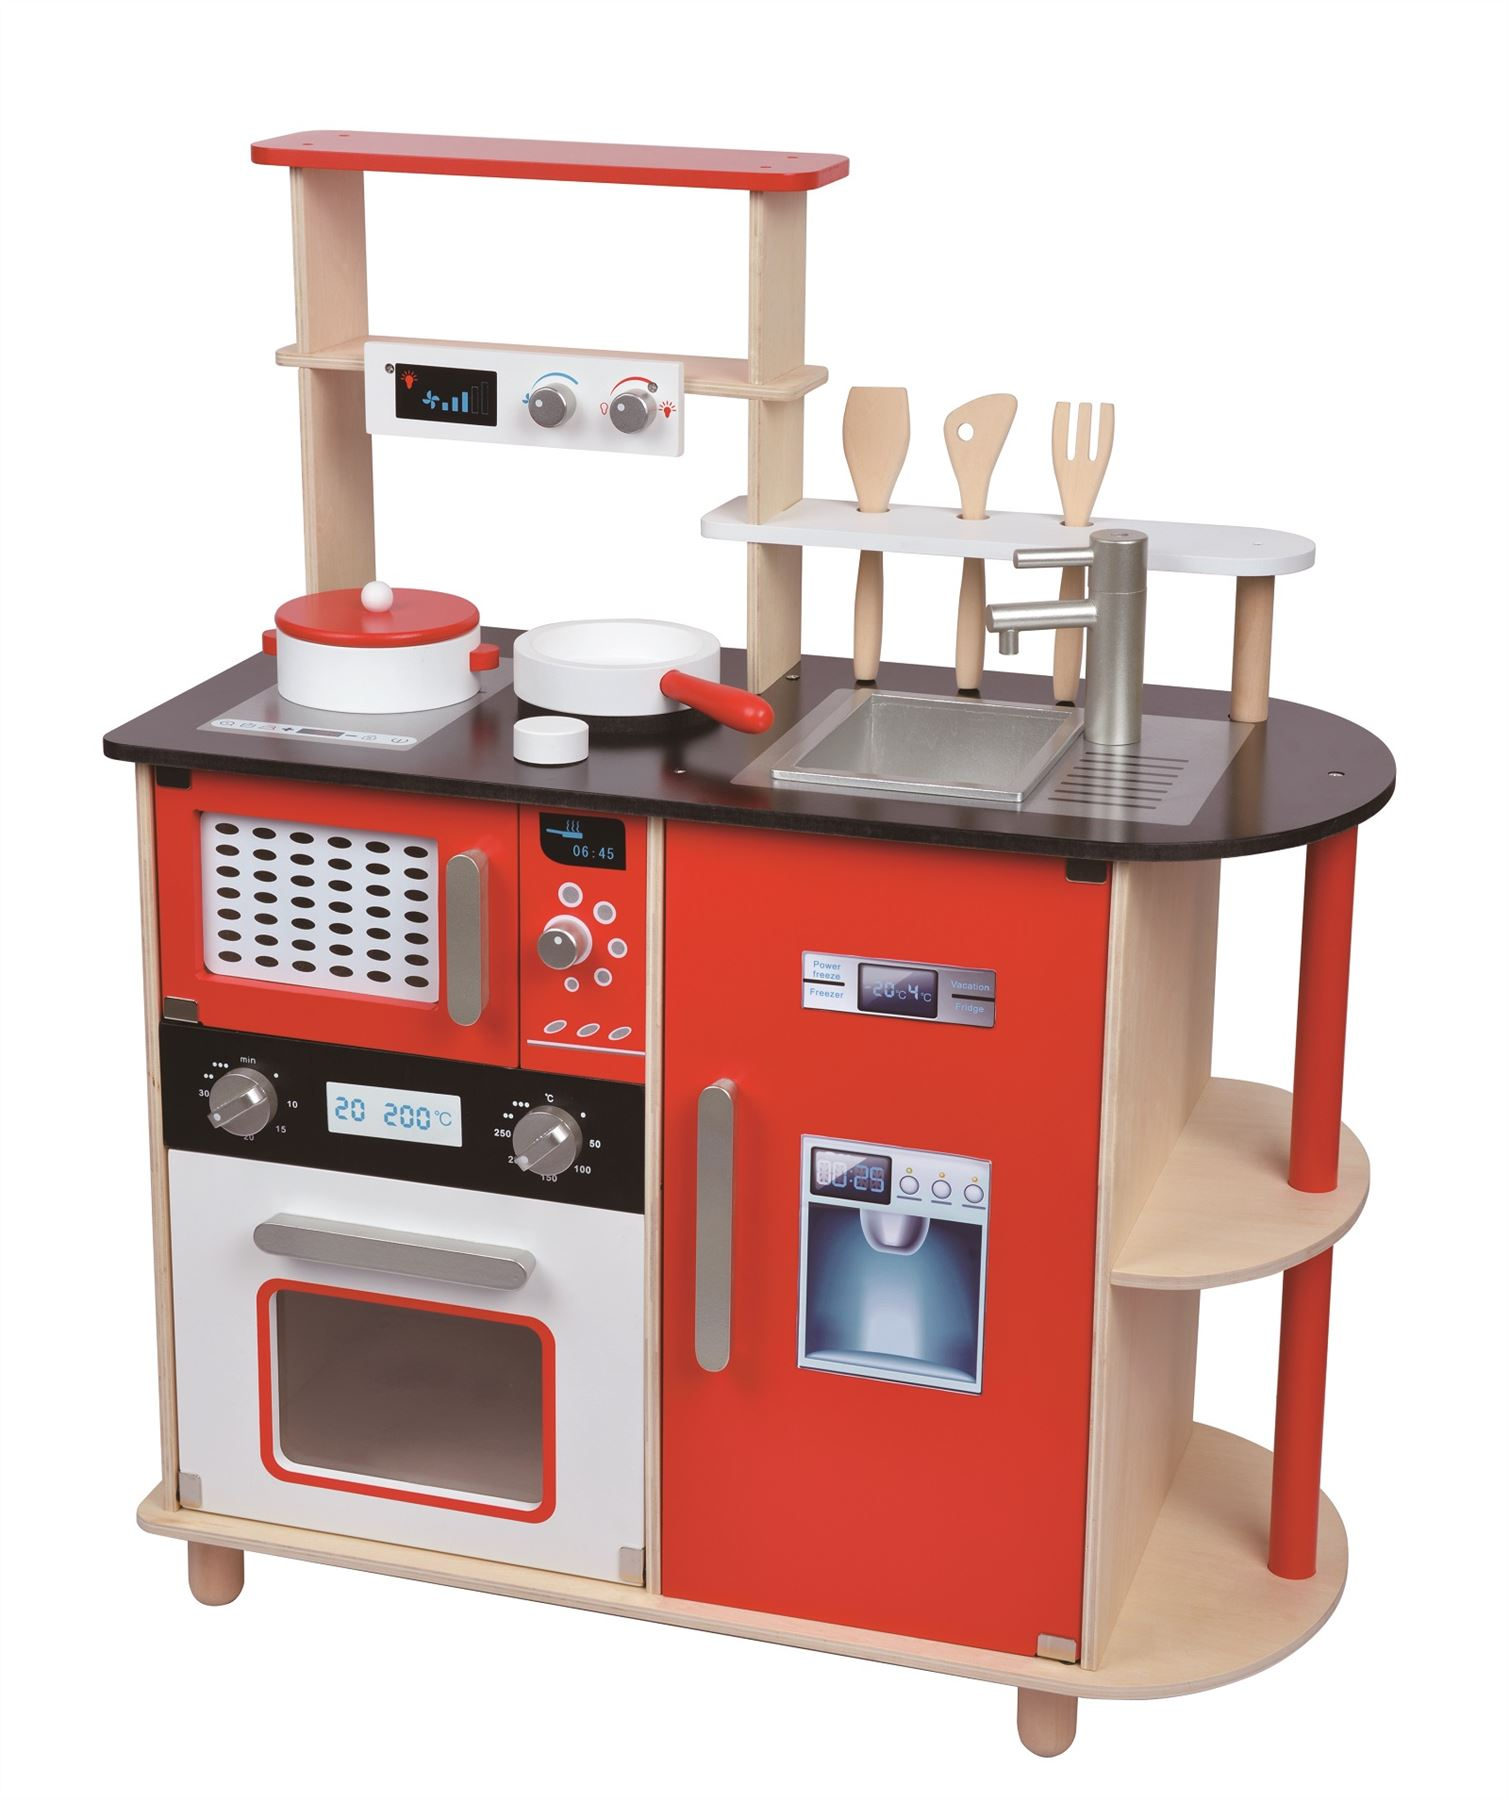 Lelin Wooden Childrens Pretend Play Modern Kitchen Cooking Toy With Pots Pans Ebay